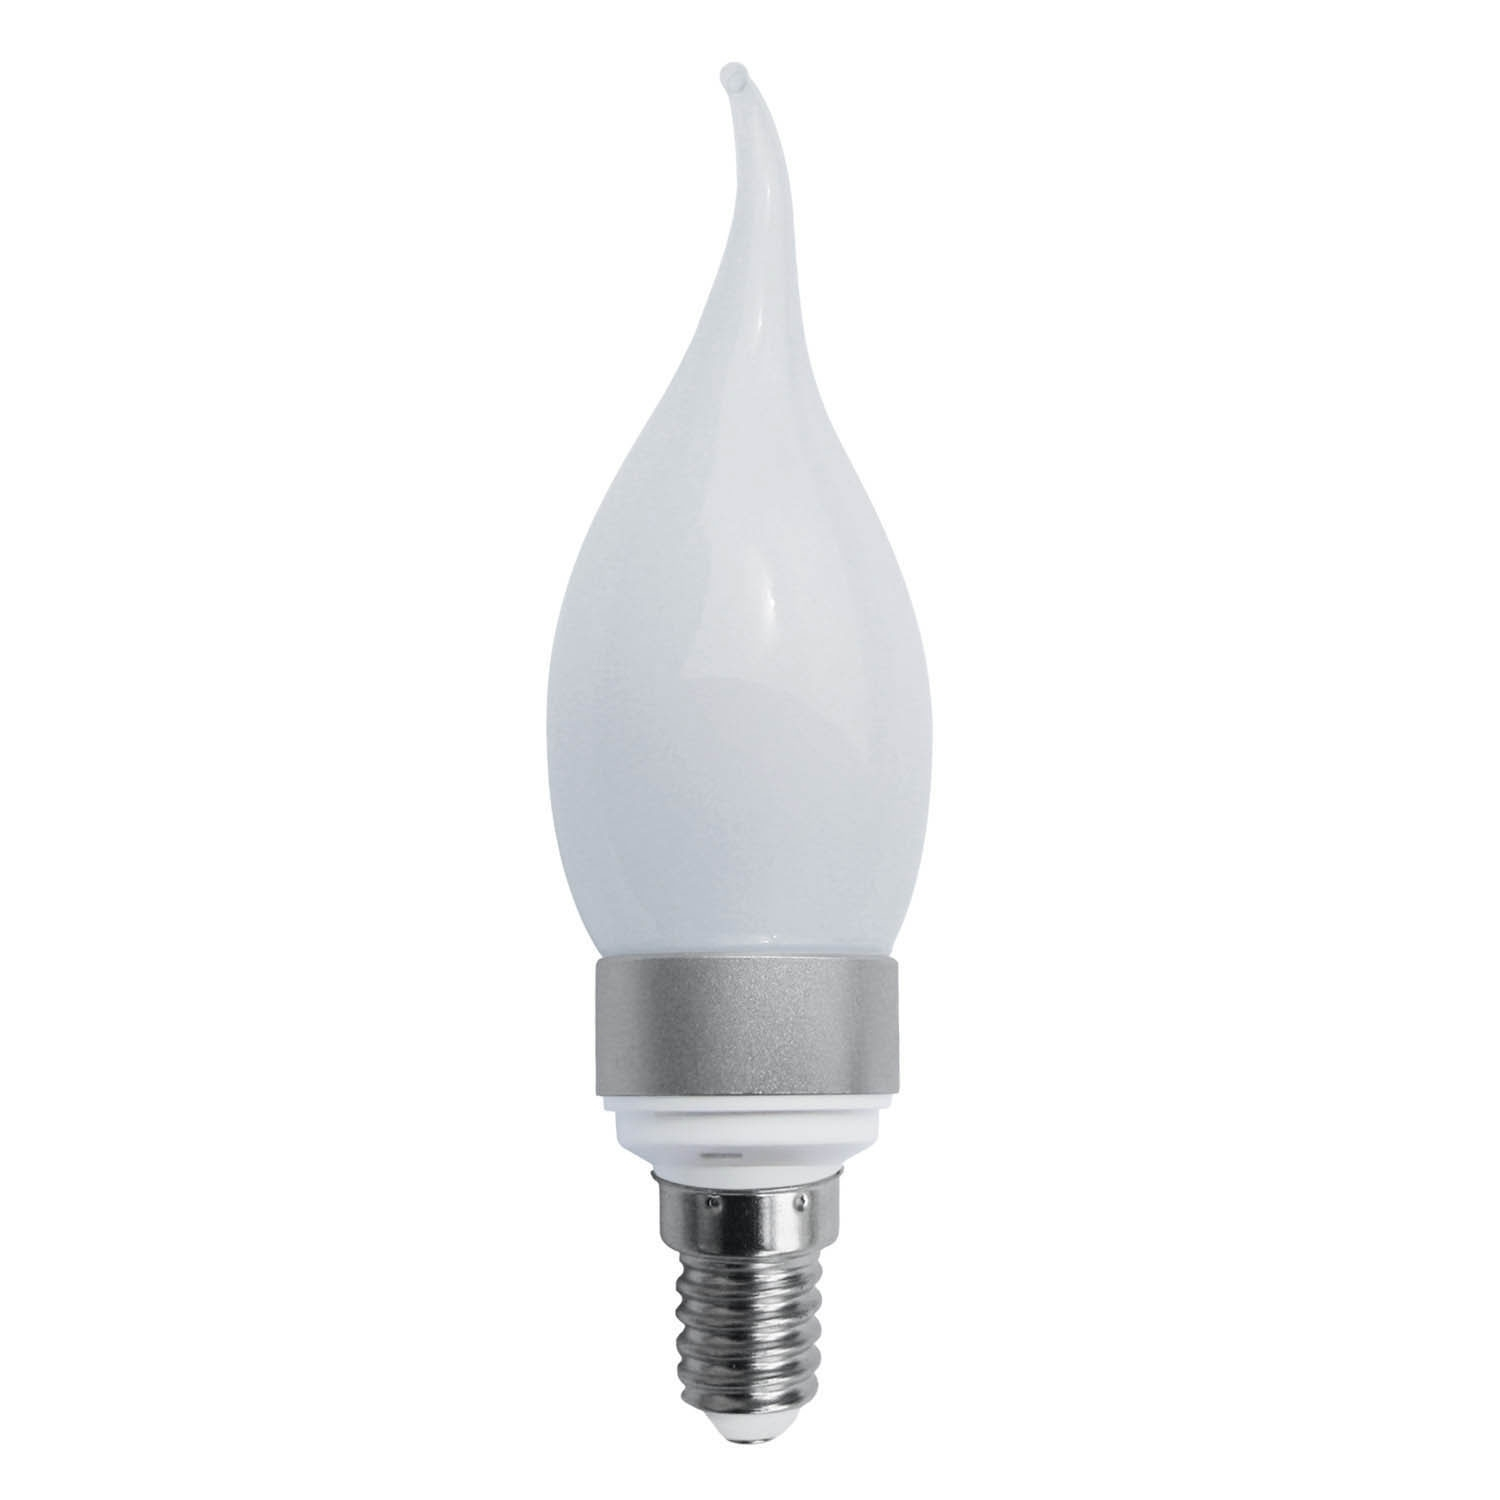 Bombilla led e14 bombillas led e14 - Bombilla led 5w ...